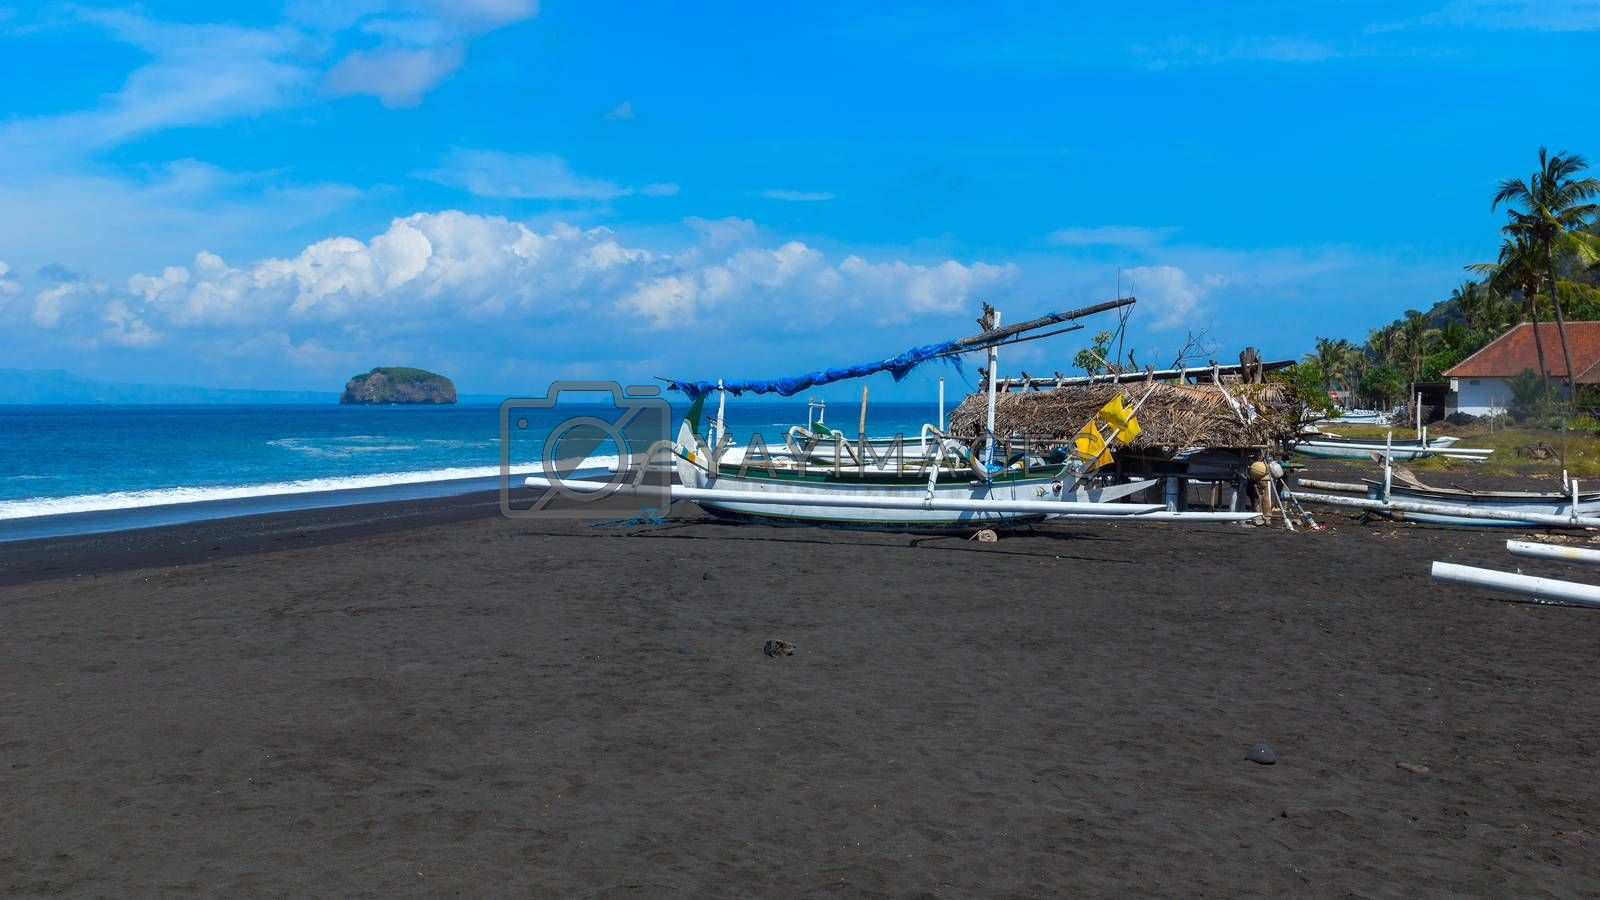 Boats on the beach of black sand on the island of Bali in Indonesia. Summer sunny day.